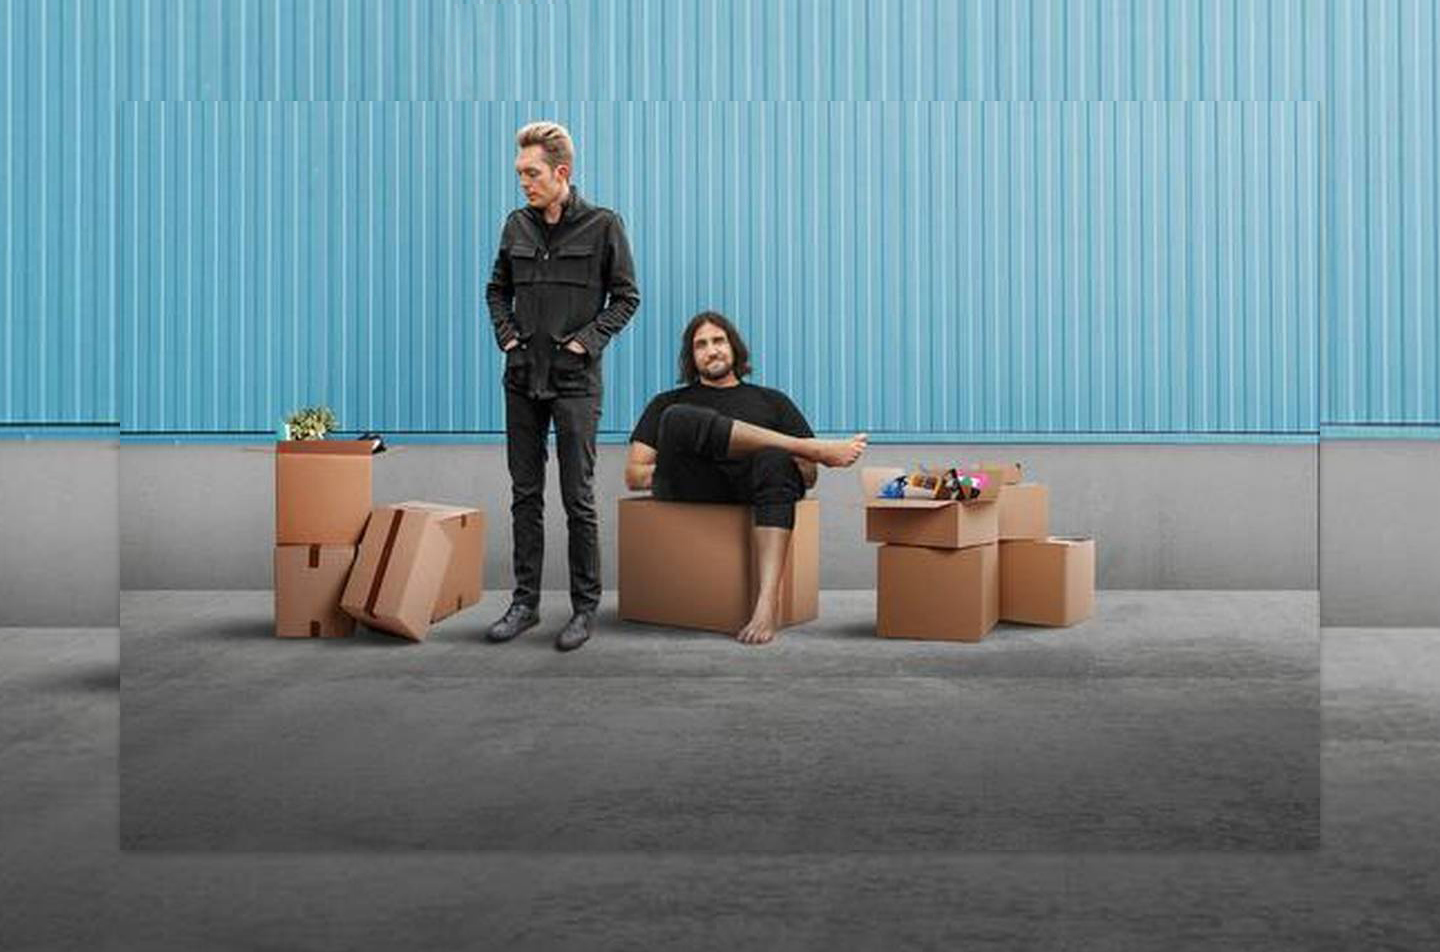 Netflix The Minimalists - Less is now